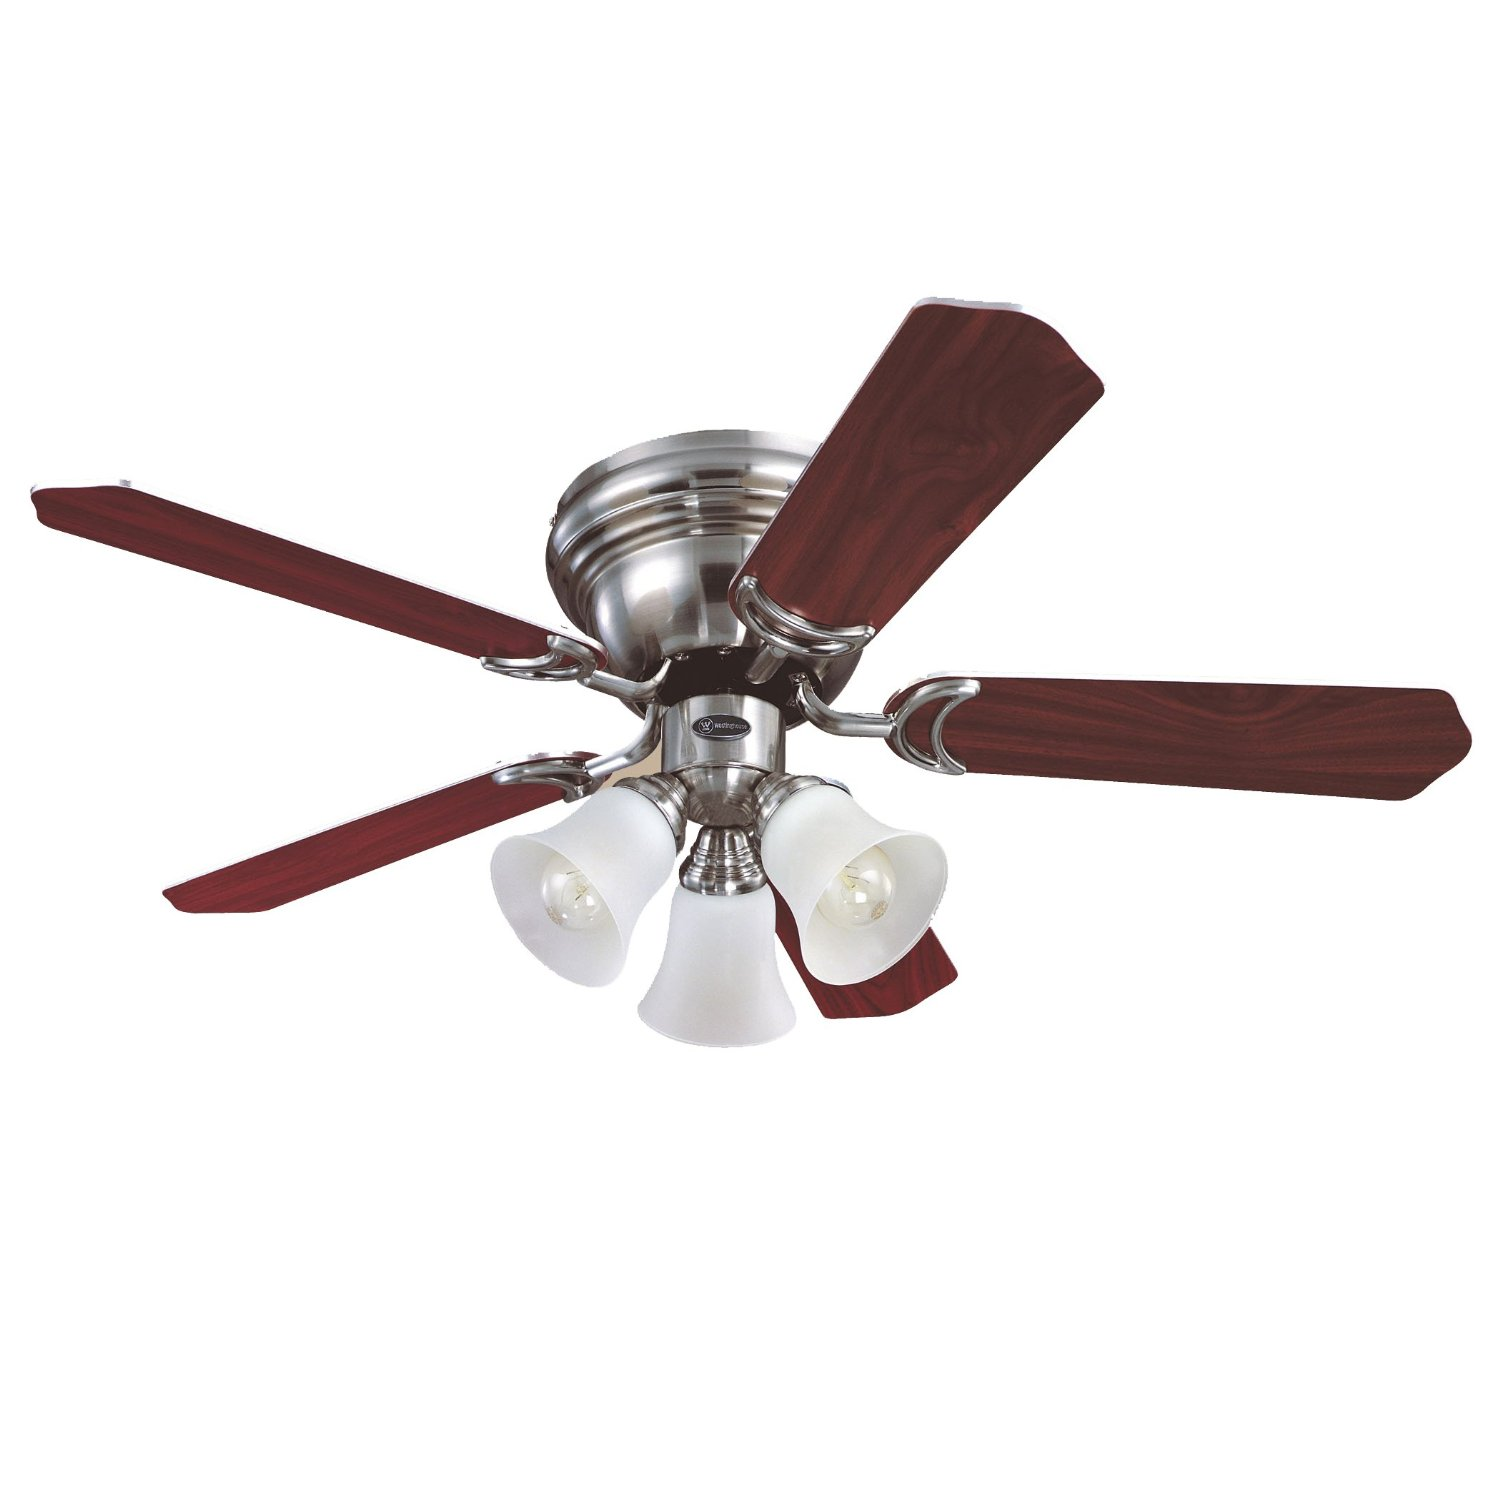 Getting all lighting convinience with hunter lights and - Pictures of ceiling fans ...